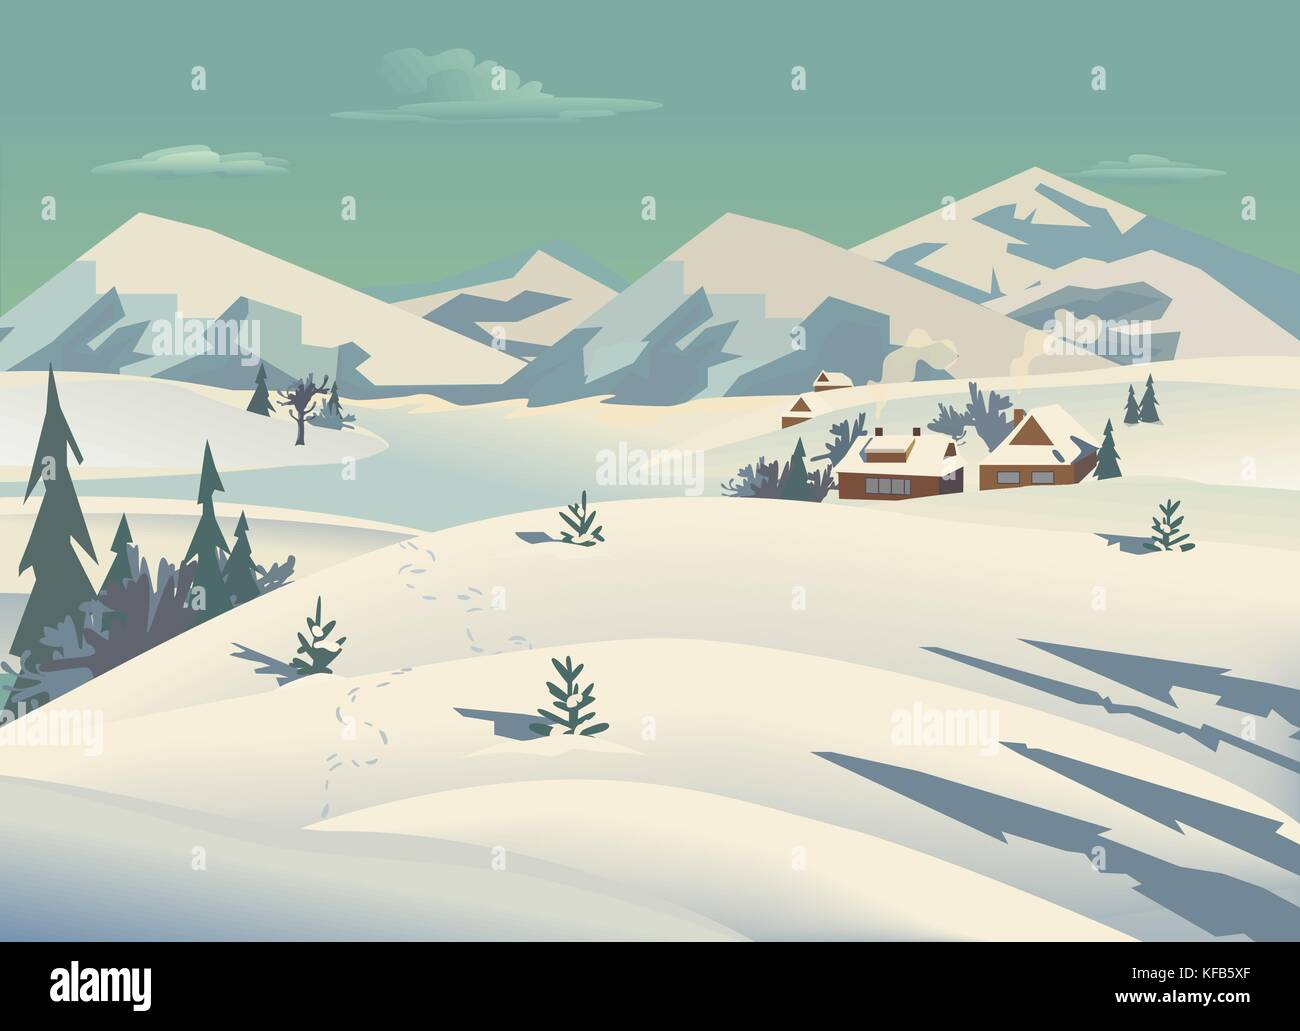 Winter nature landscape. Mountain river in snowy glacier valley. Houses on bank under snow. Lake view among hills, - Stock Vector